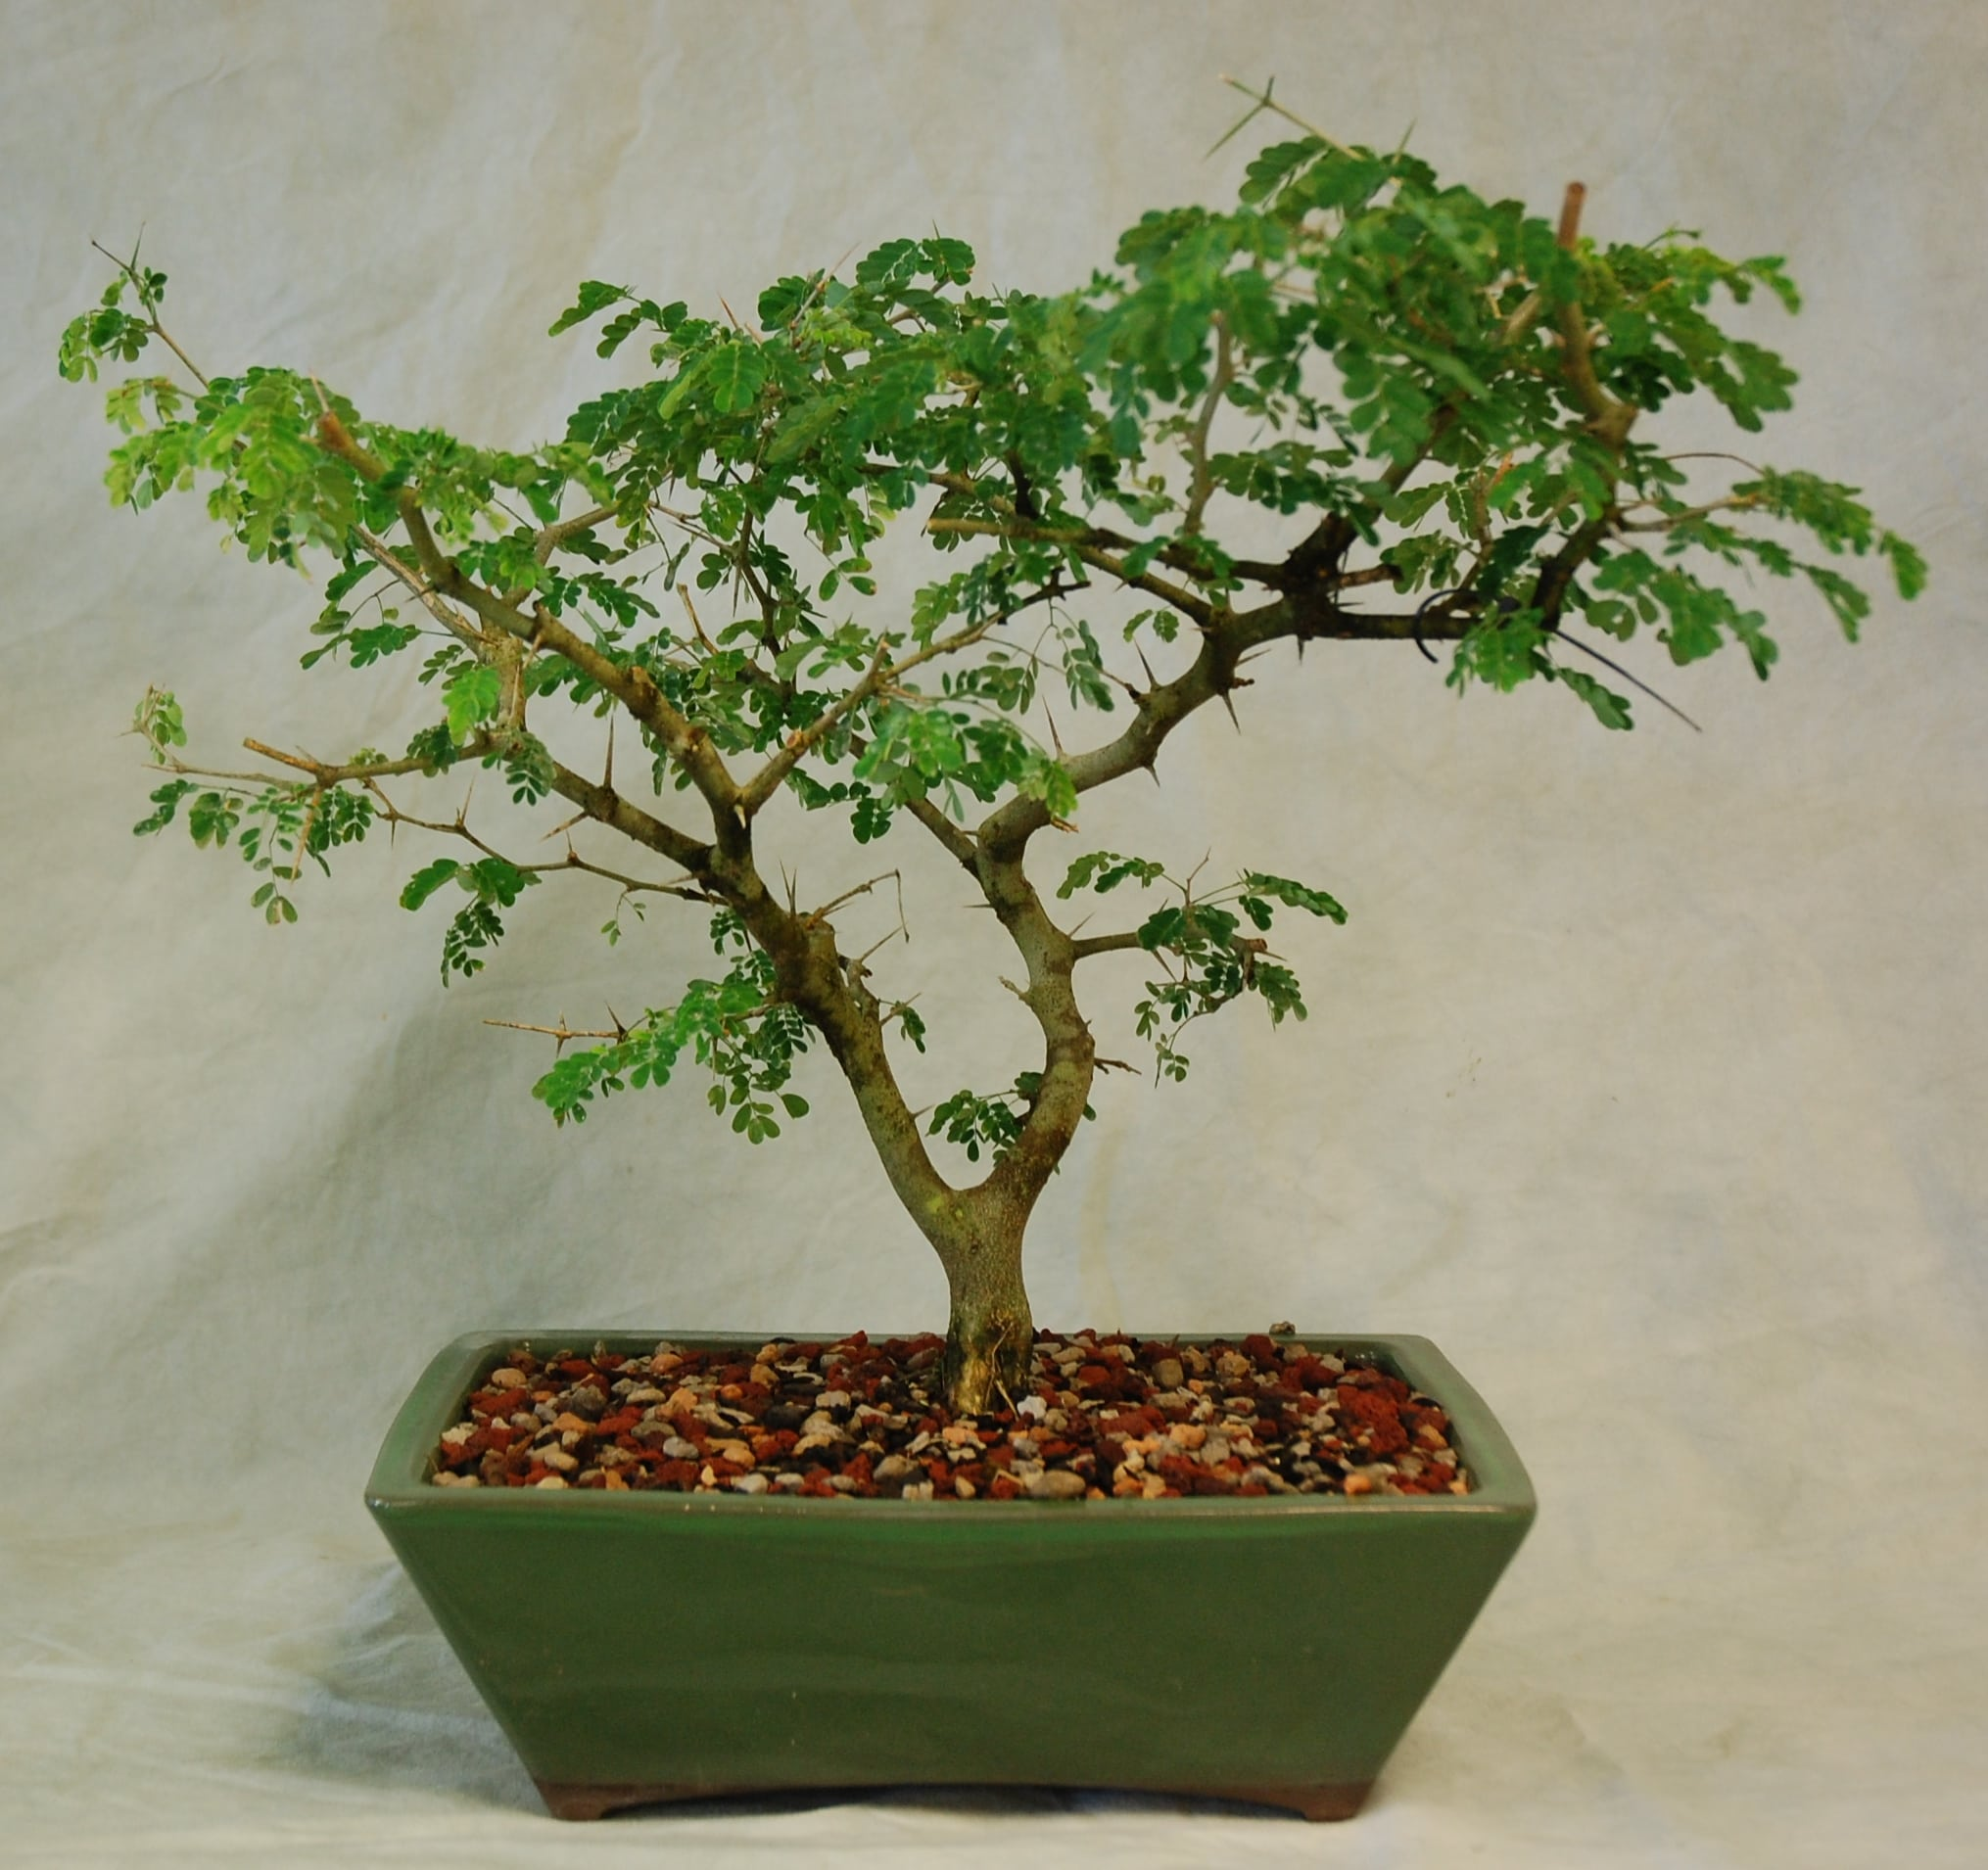 Bonsai Starter Trees